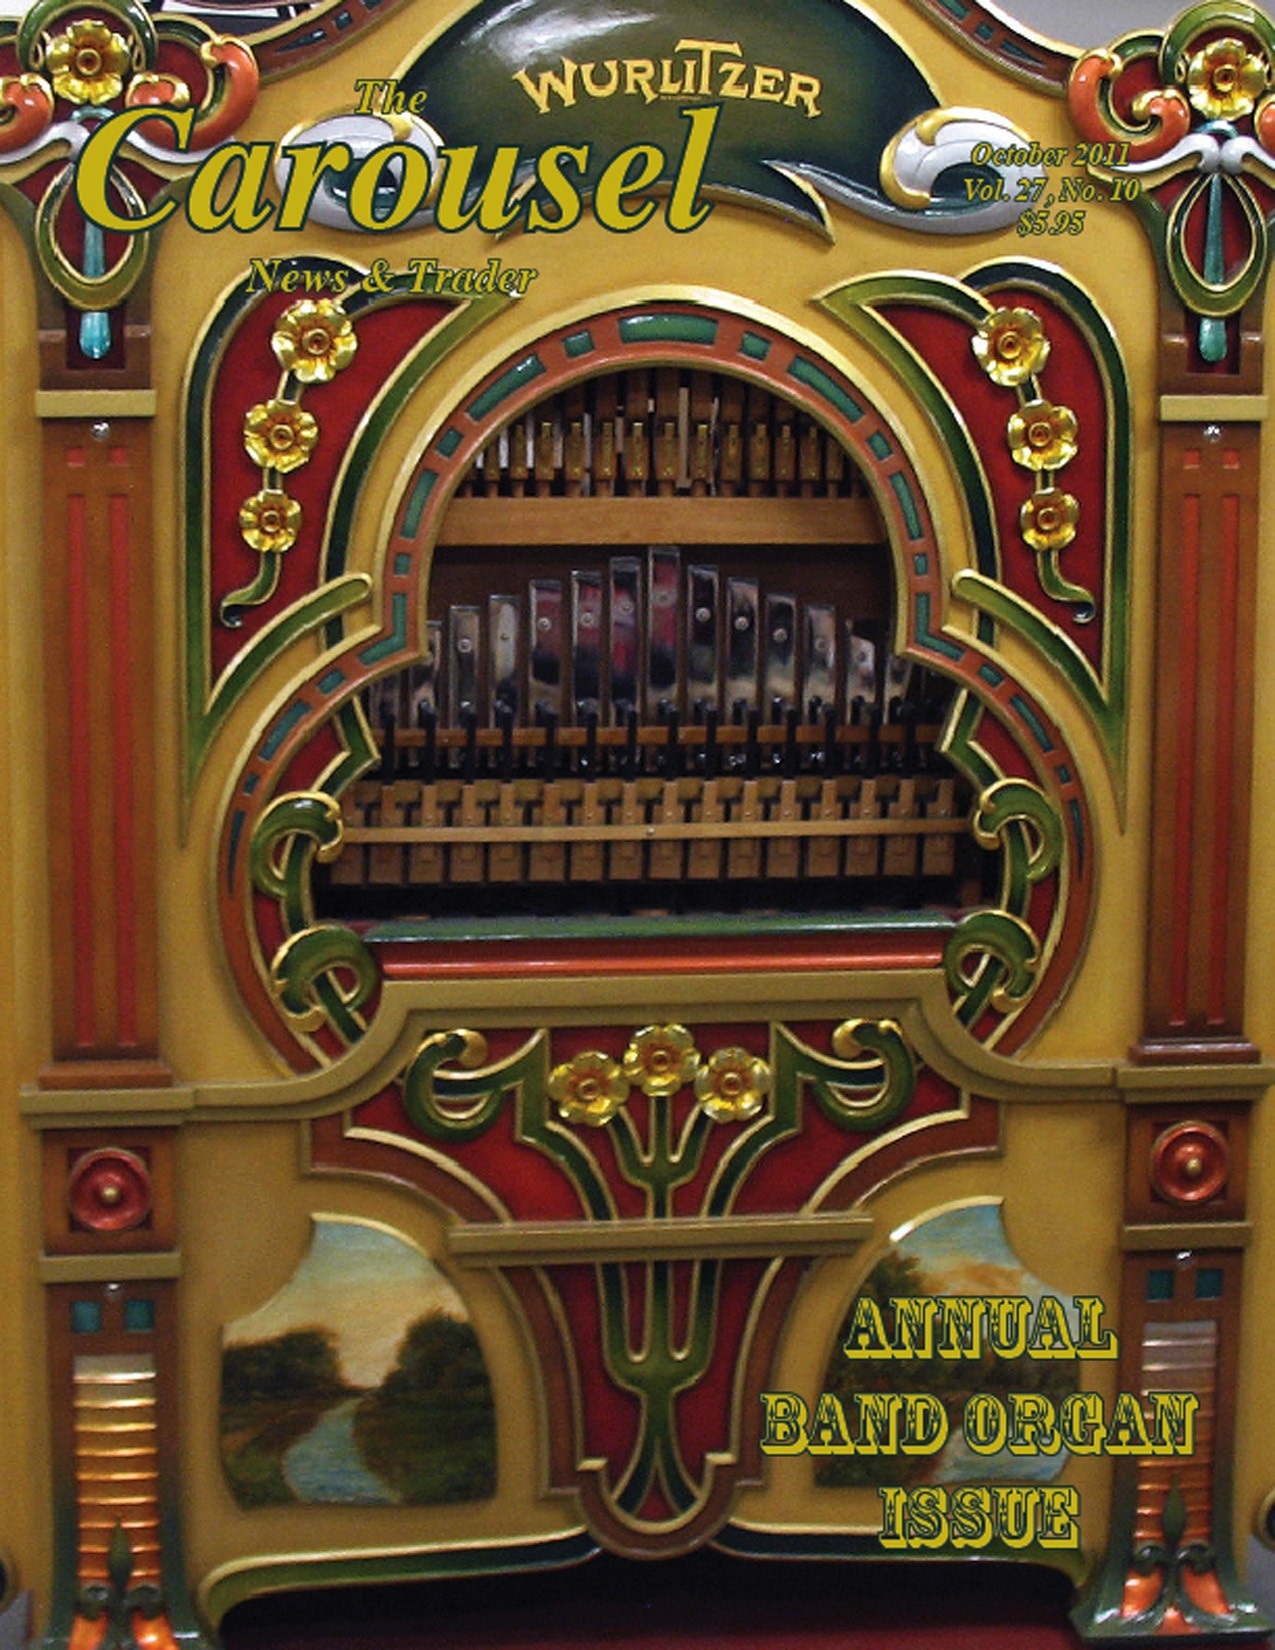 Carousel-news-cover-10-Norumbega-Park-Wurlitzer-146-carousel-band-organ-October-2011